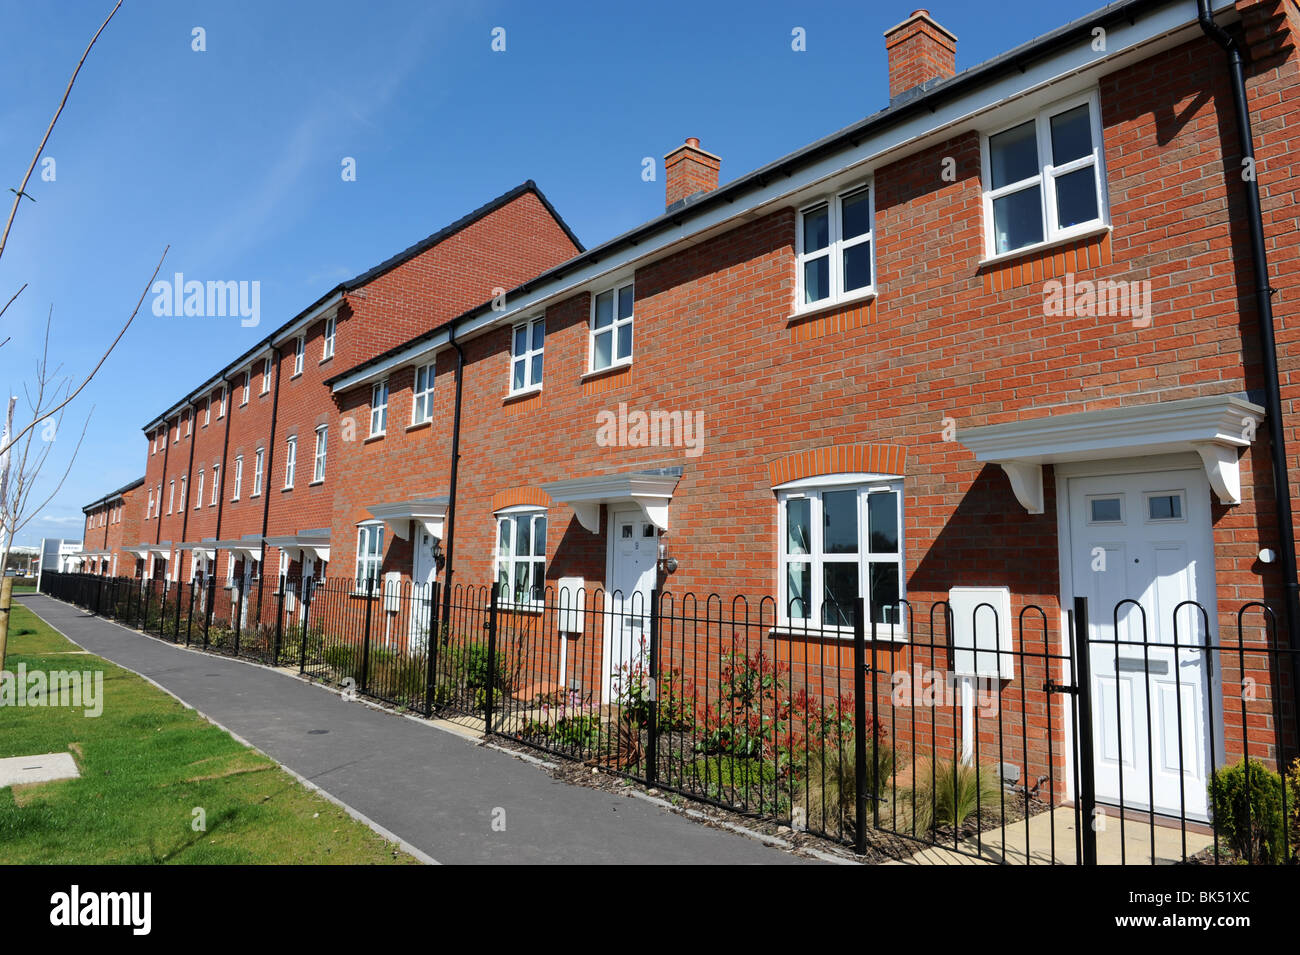 Images of terraced houses house image for Terrace house